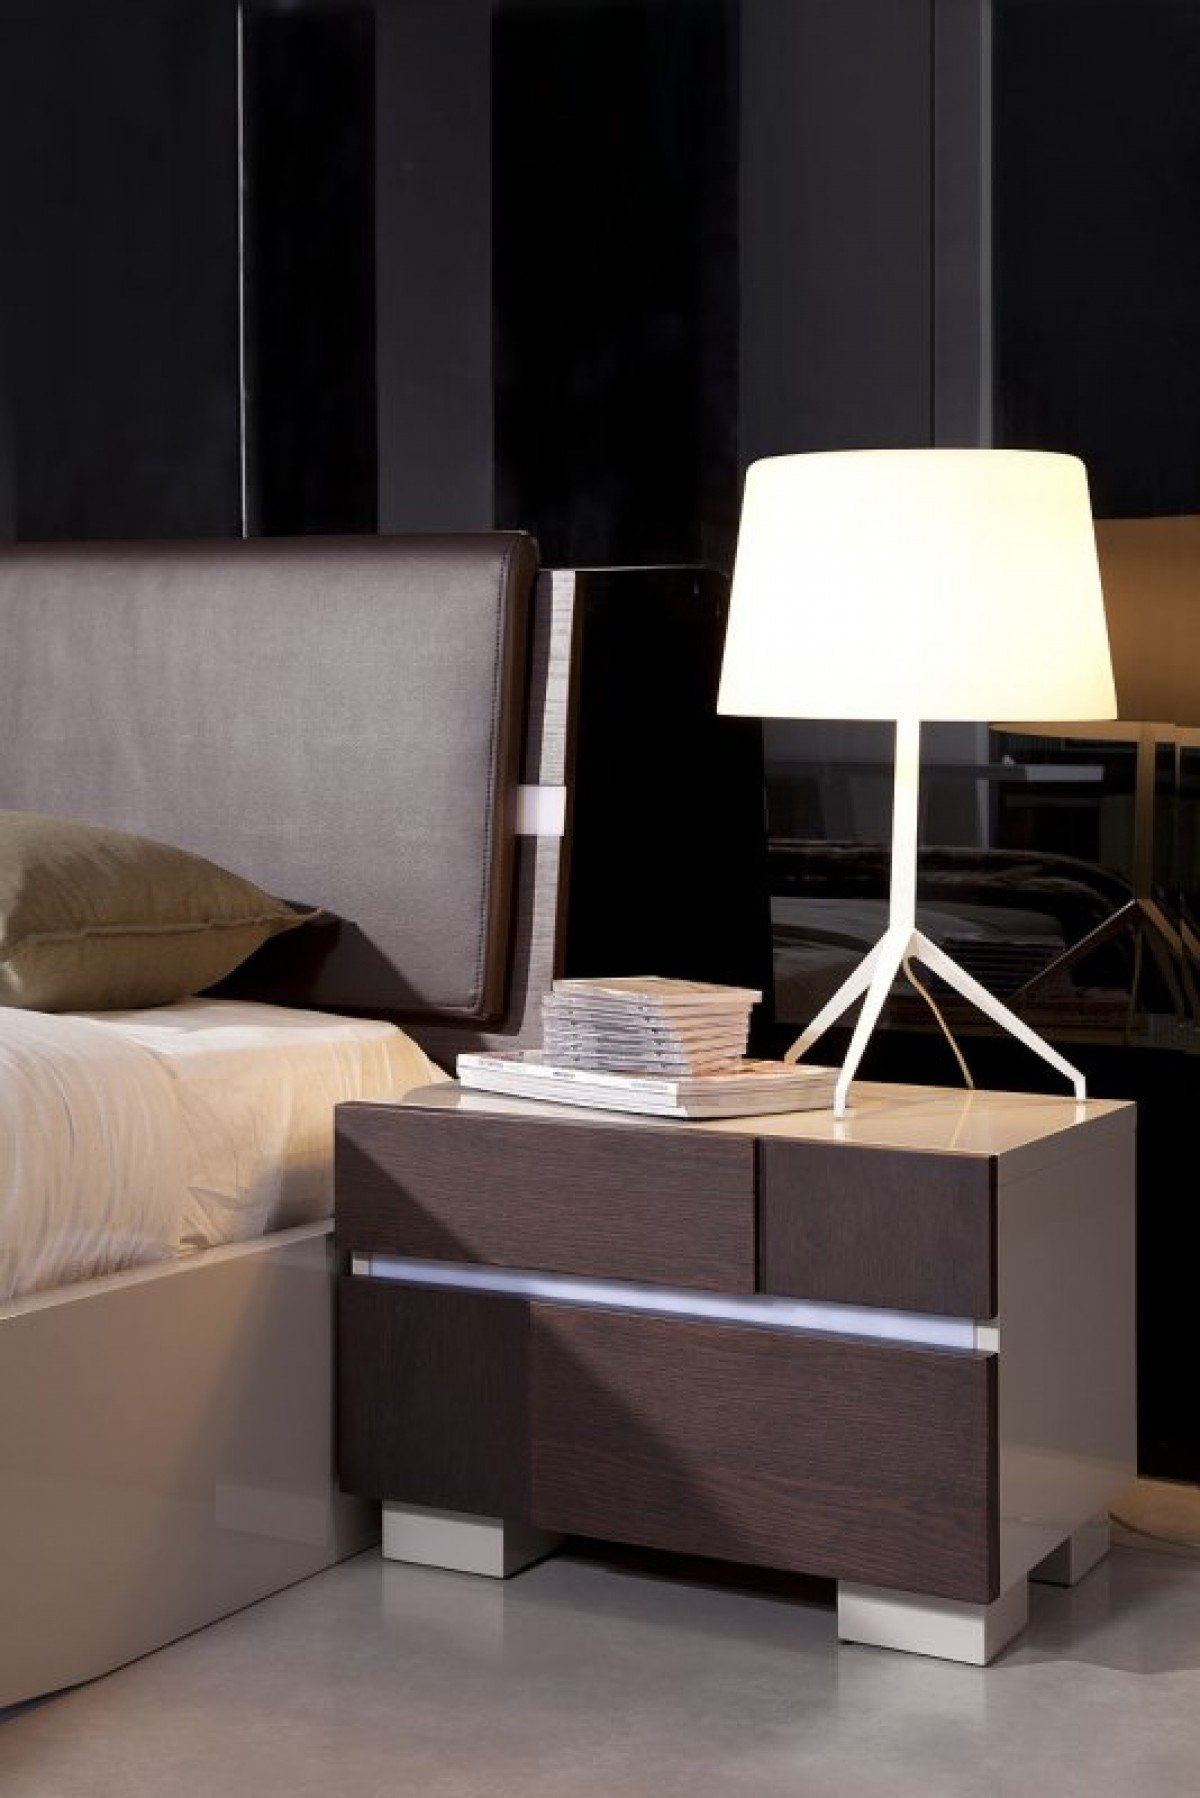 Floating Queen Bed Frame Beautiful Contemporary Floating Queen Bed with Led Lights by Venini Model